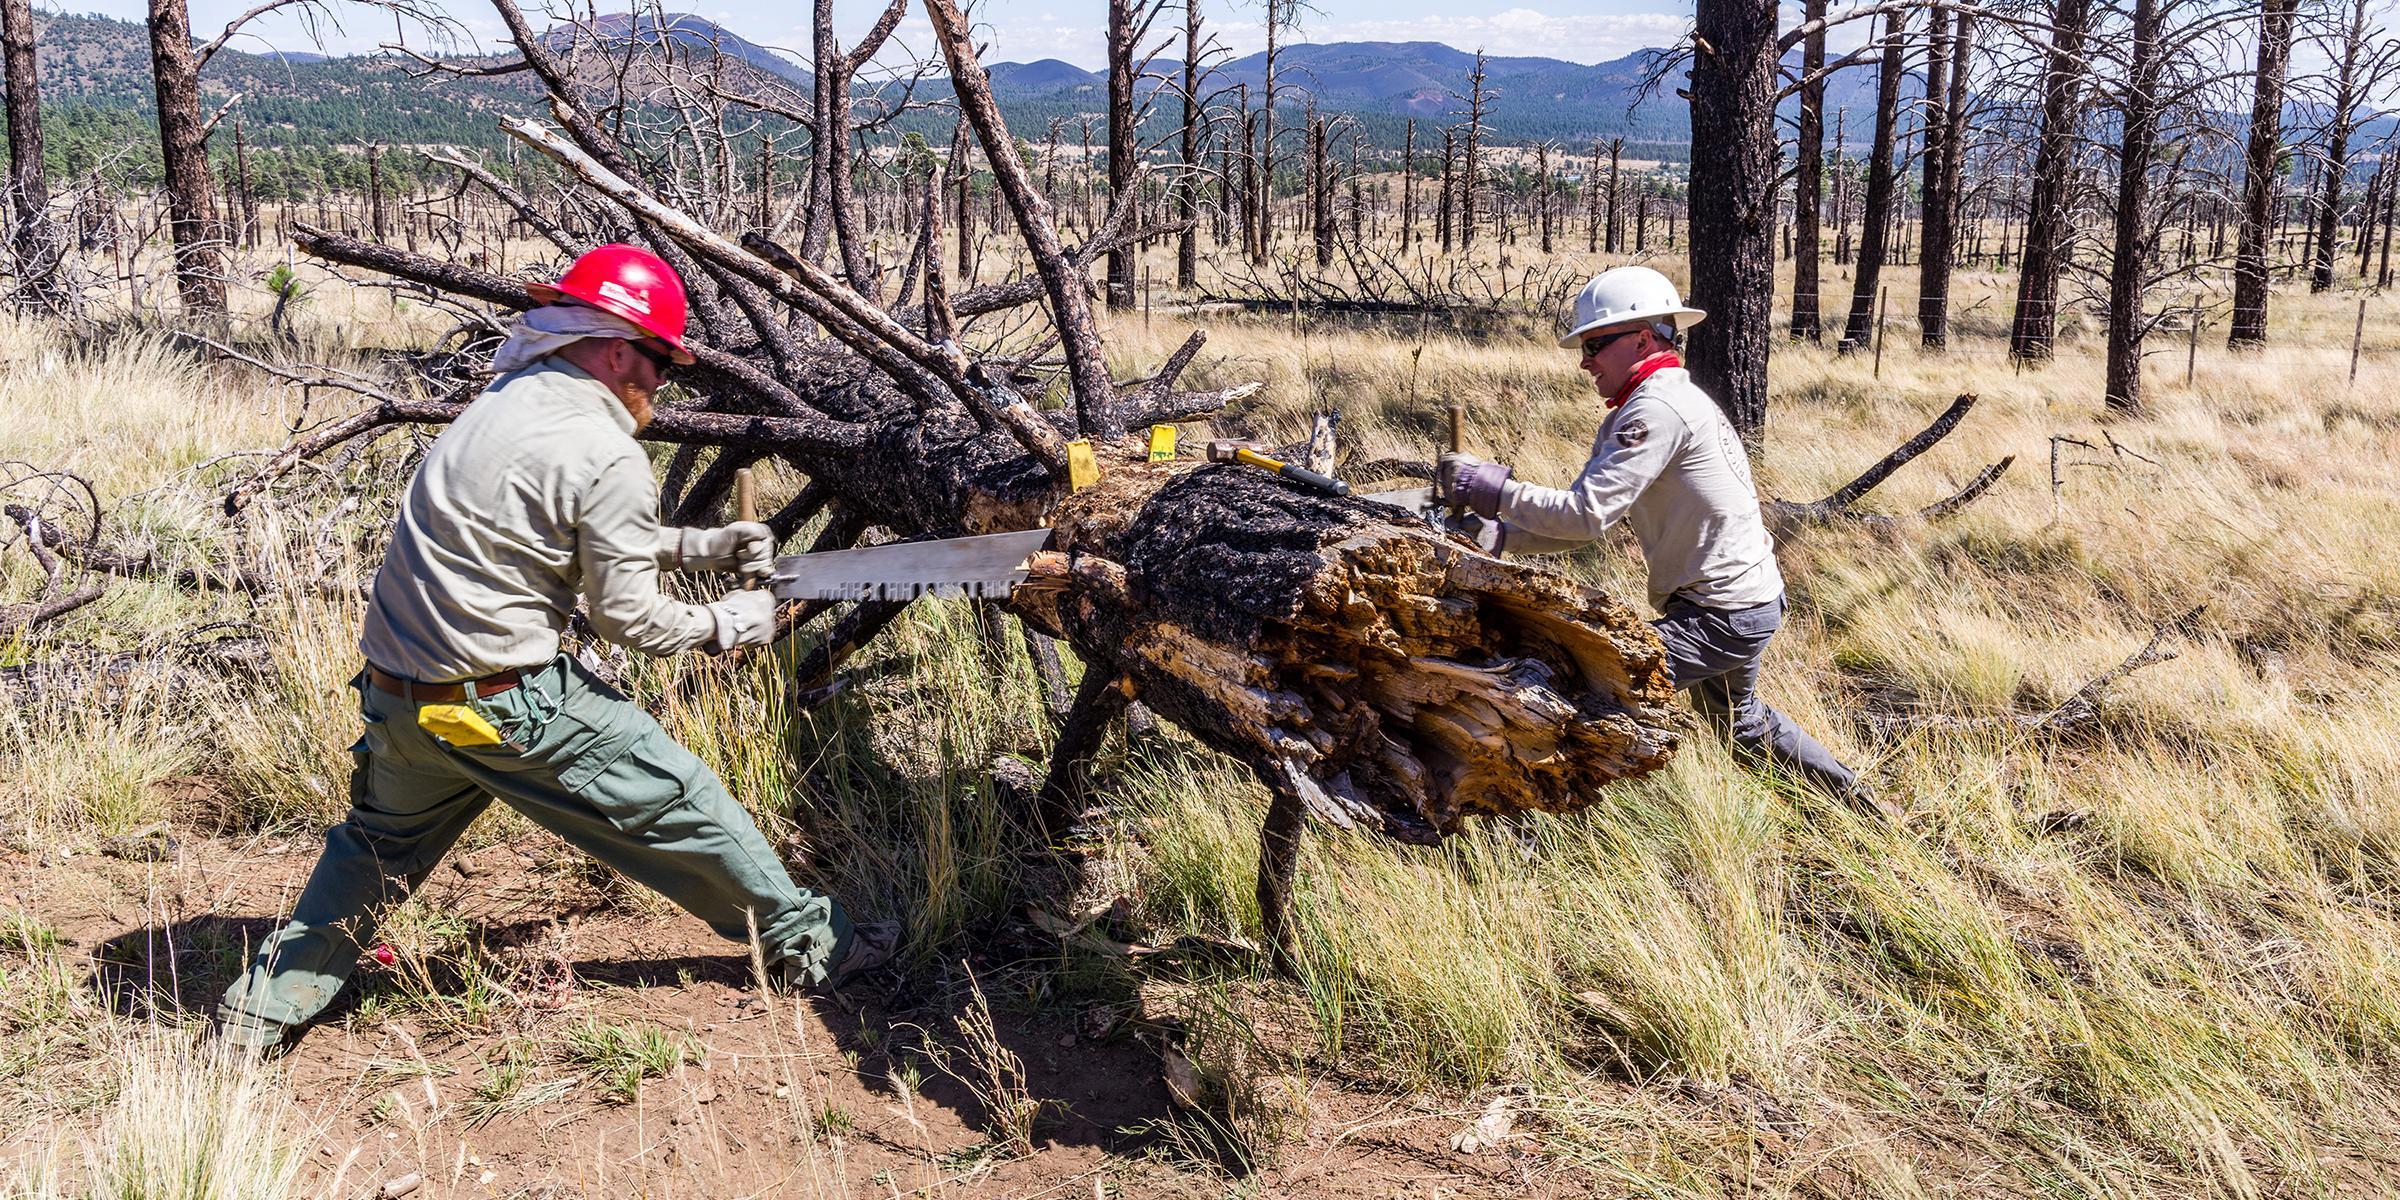 A picture of two workers using a band saw to cut a downed tree.